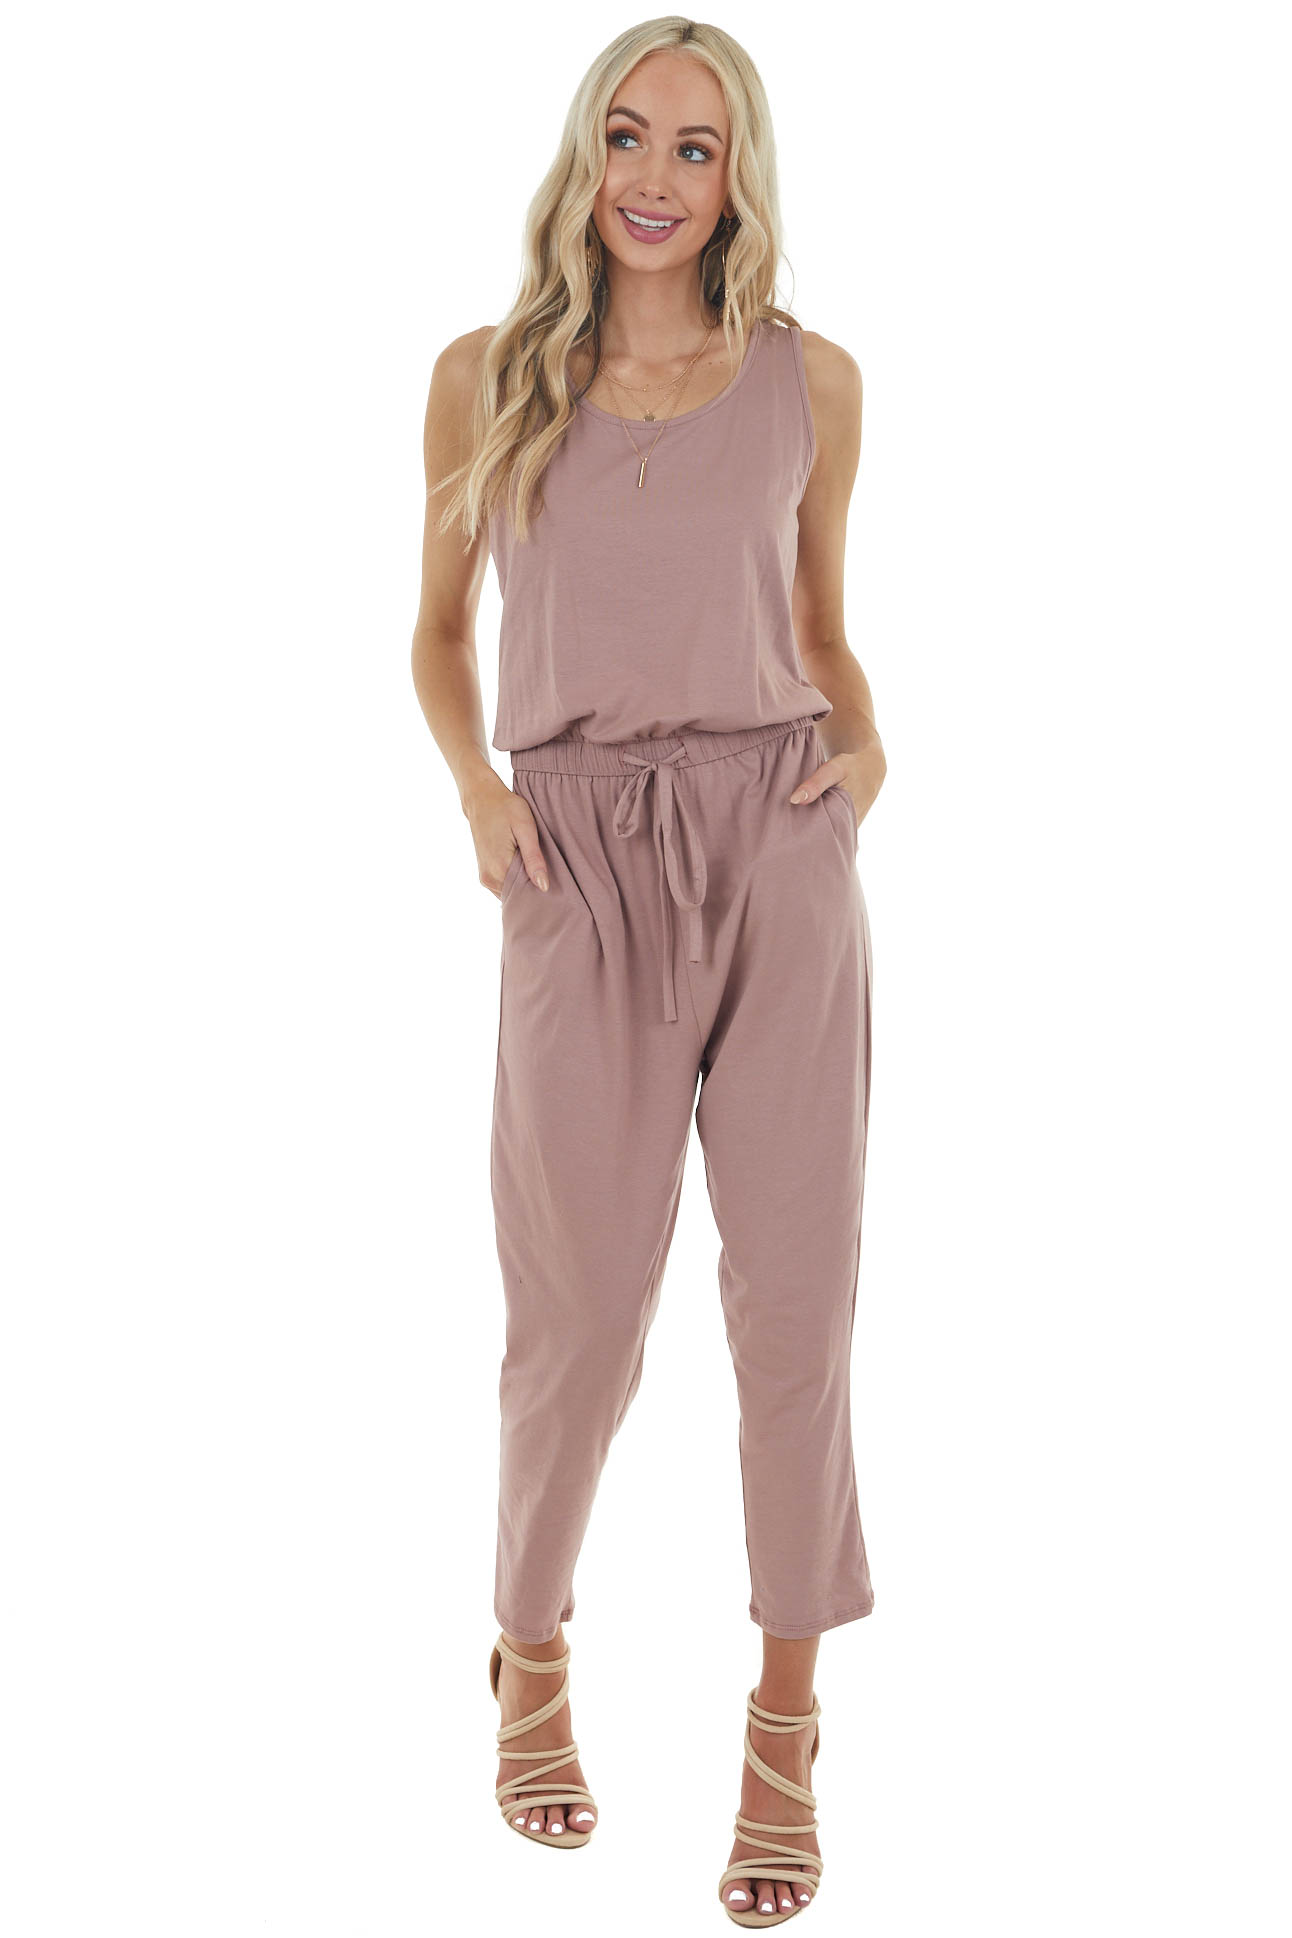 Dusty Rose Sleeveless Knit Jumpsuit with Keyhole Back Detail